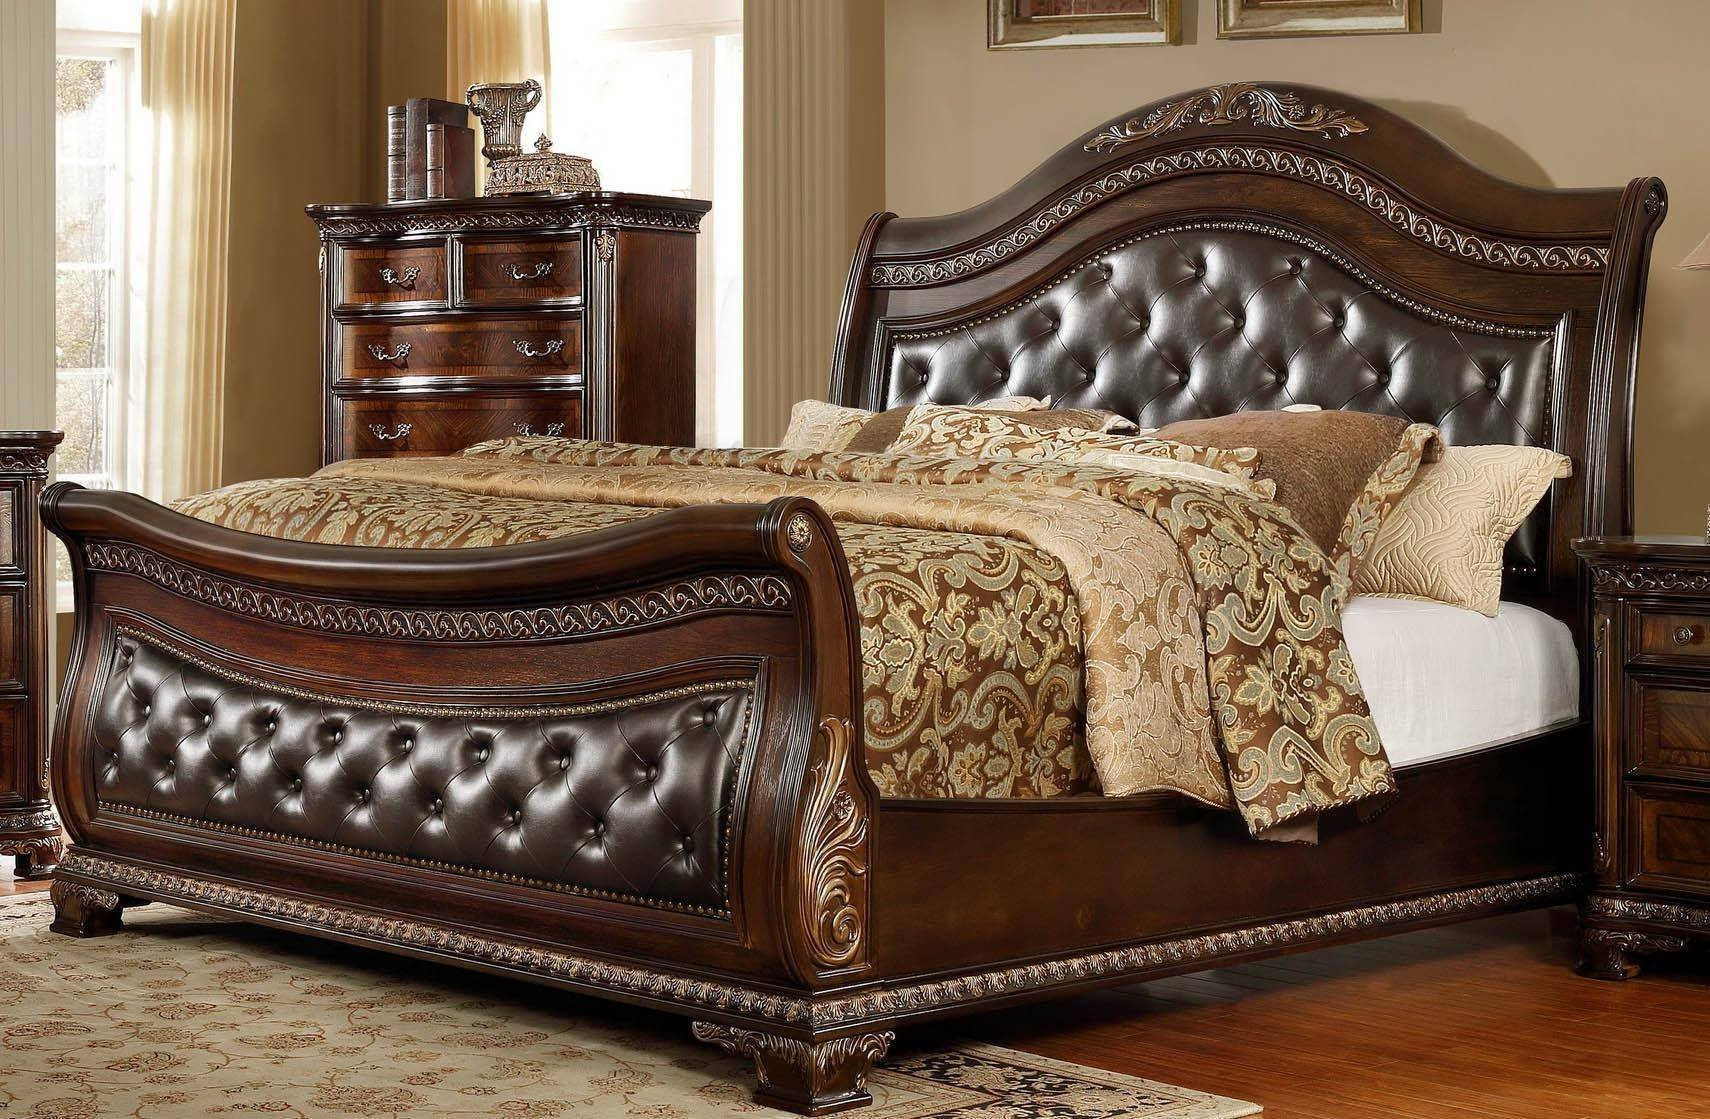 King Size Bedroom Set New Mcferran B9588 King Sleigh Bed In Oak Veneers Dark Cherry Finish Leather